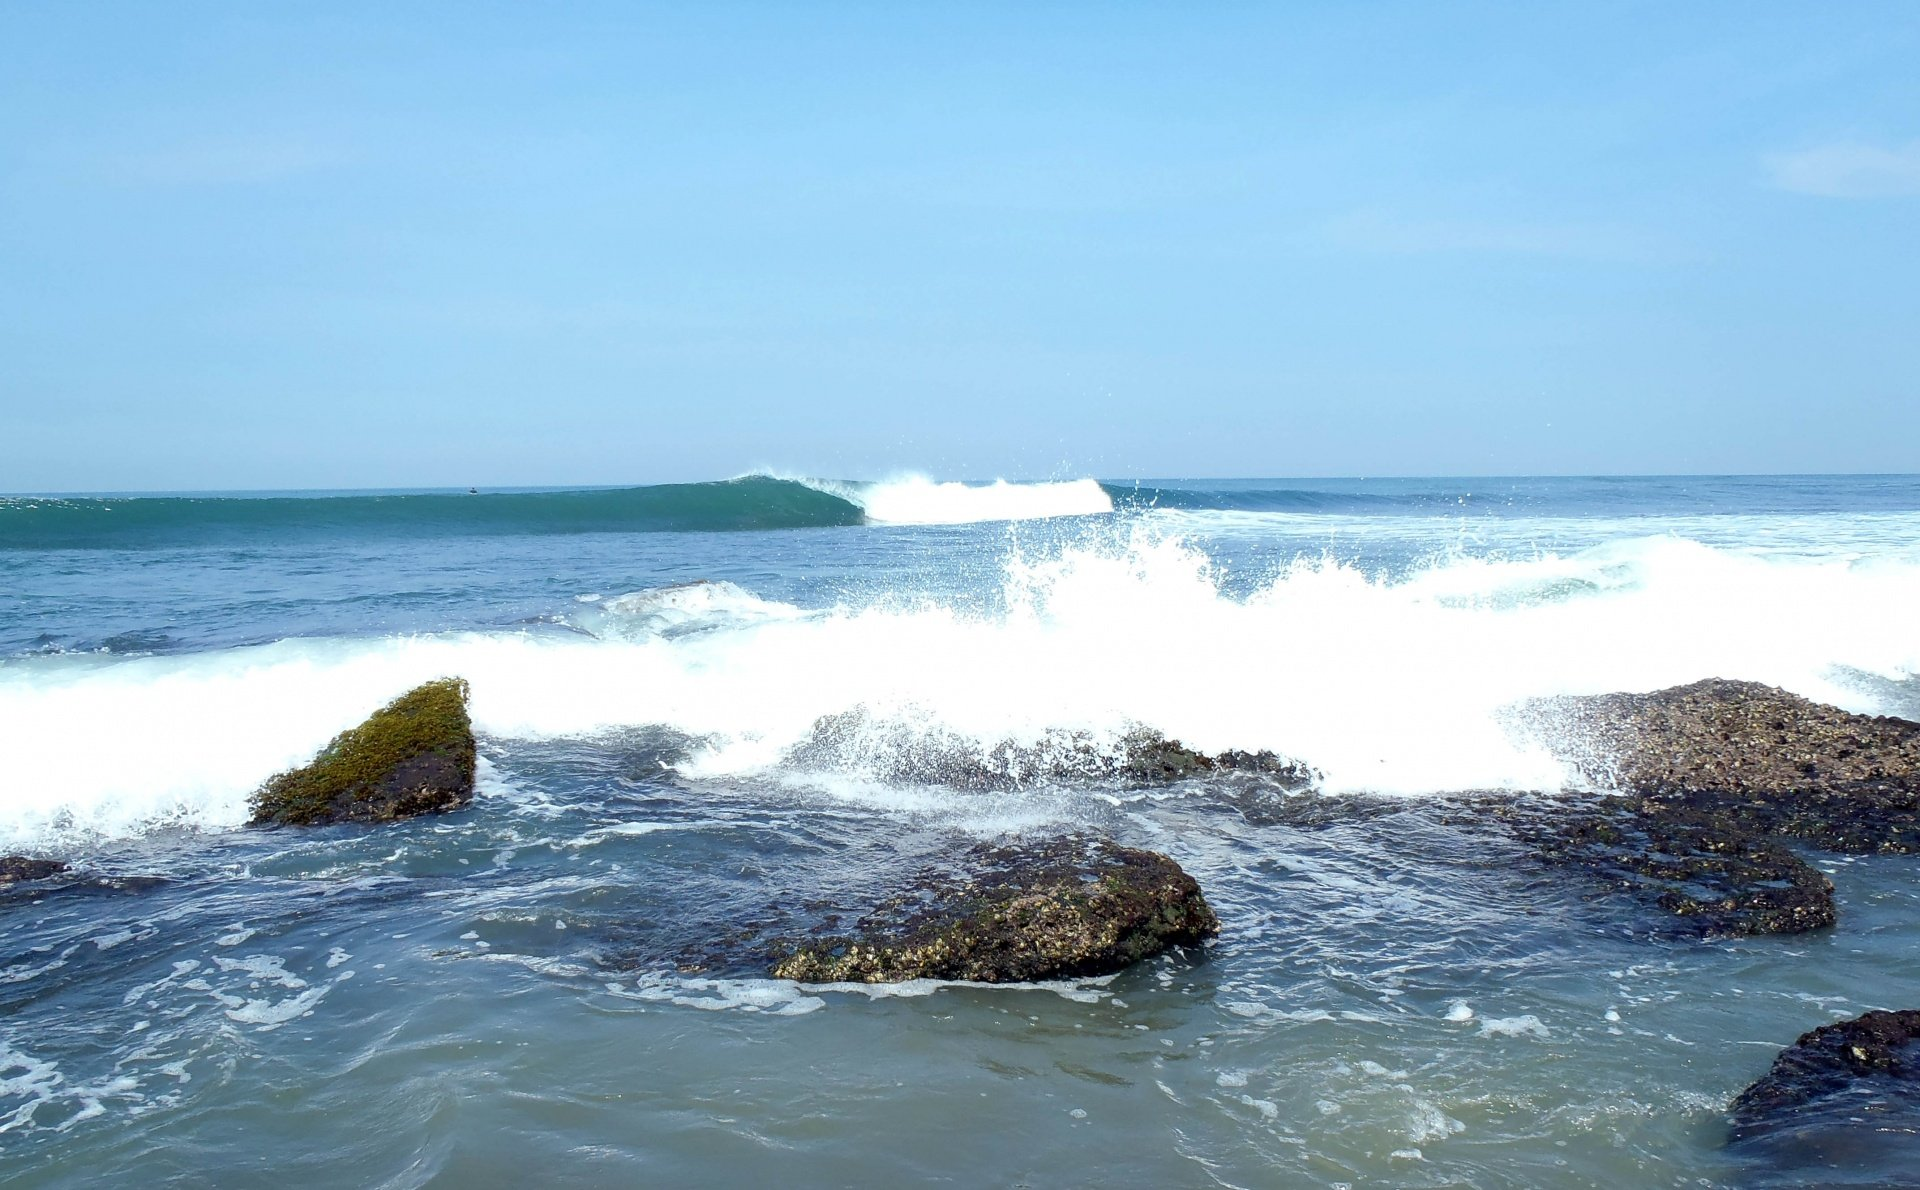 Richard Walker's photo of Canggu